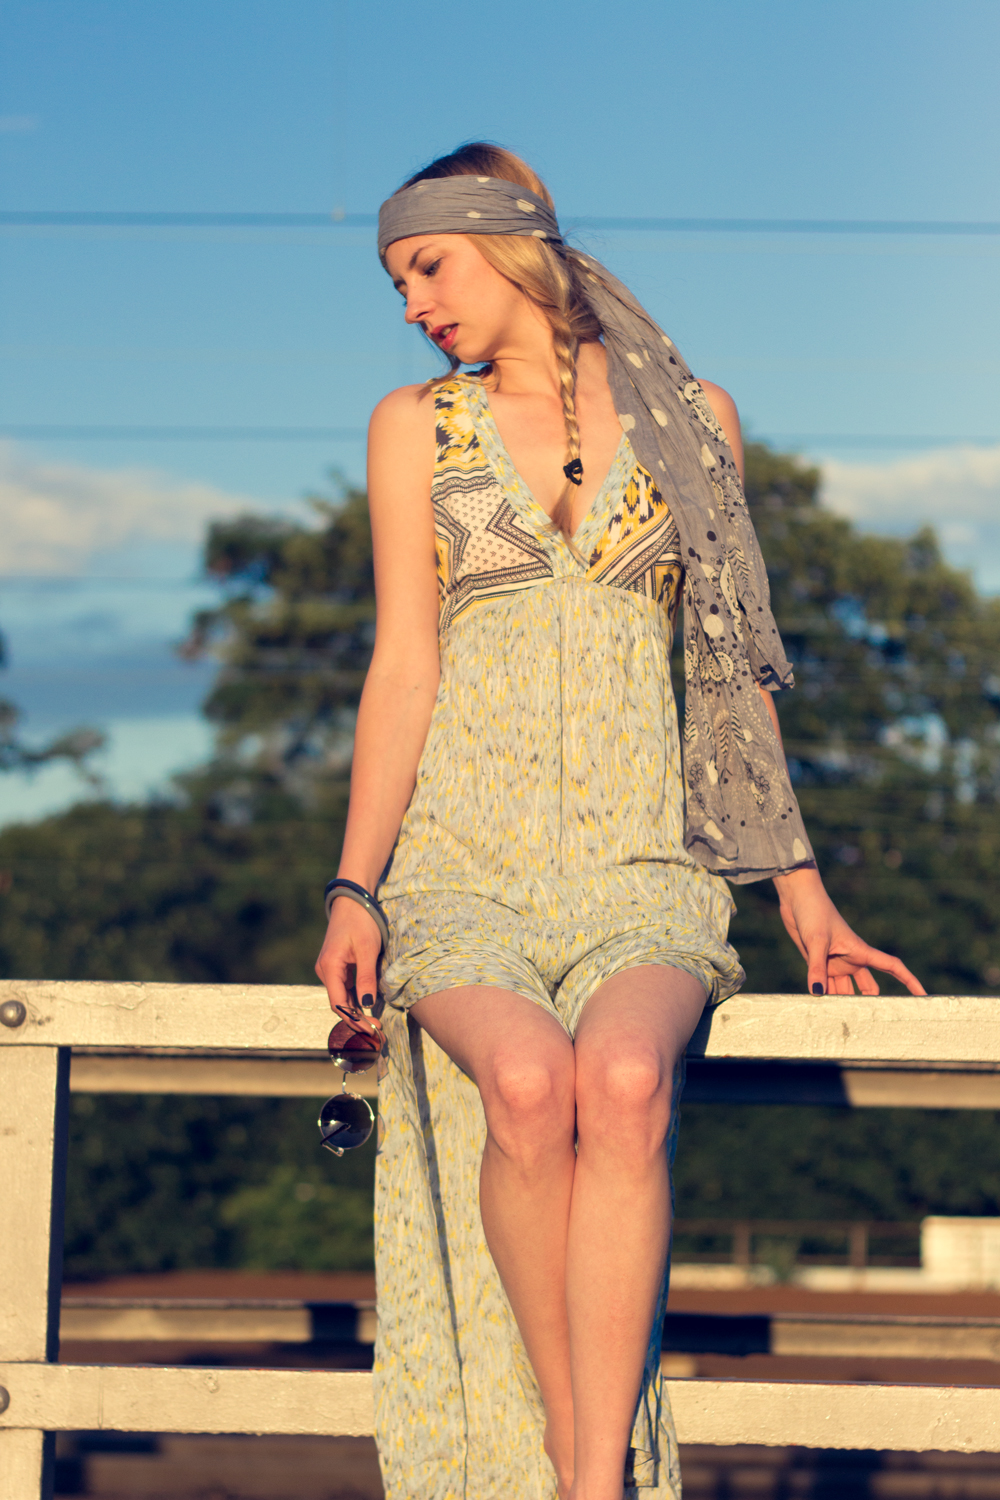 Hippie Chic Maxi Dresses: Den Sonnenuntergang genießen. // Enjoying the sundown.